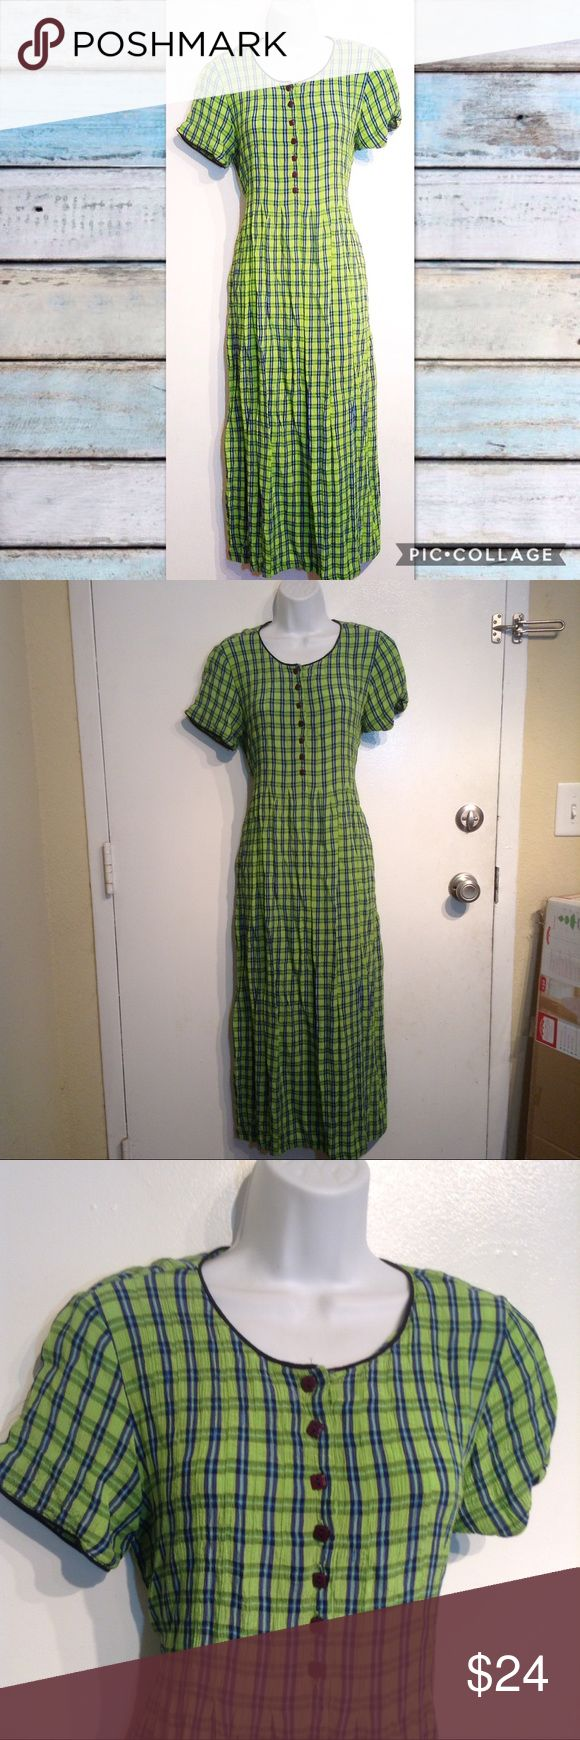 "VTG 90s Lime Green Checkered Plaid Midi Dress Vintage 90s Sarah Elizabeth lime  green and blue long dress. Would be midi or maxi length depending on height. Buttons at bust and ties at waist. Only flaw is it used to have a snap at the top but one side is missing. You can't even tell when wearing. Perfect for a 90s hipster grunge look. Size 8. Measures 18.5"" flat from armpit to armpit and 49"" long. No modeling. Smoke free home. I do discount bundles. Vintage Dresses Midi"